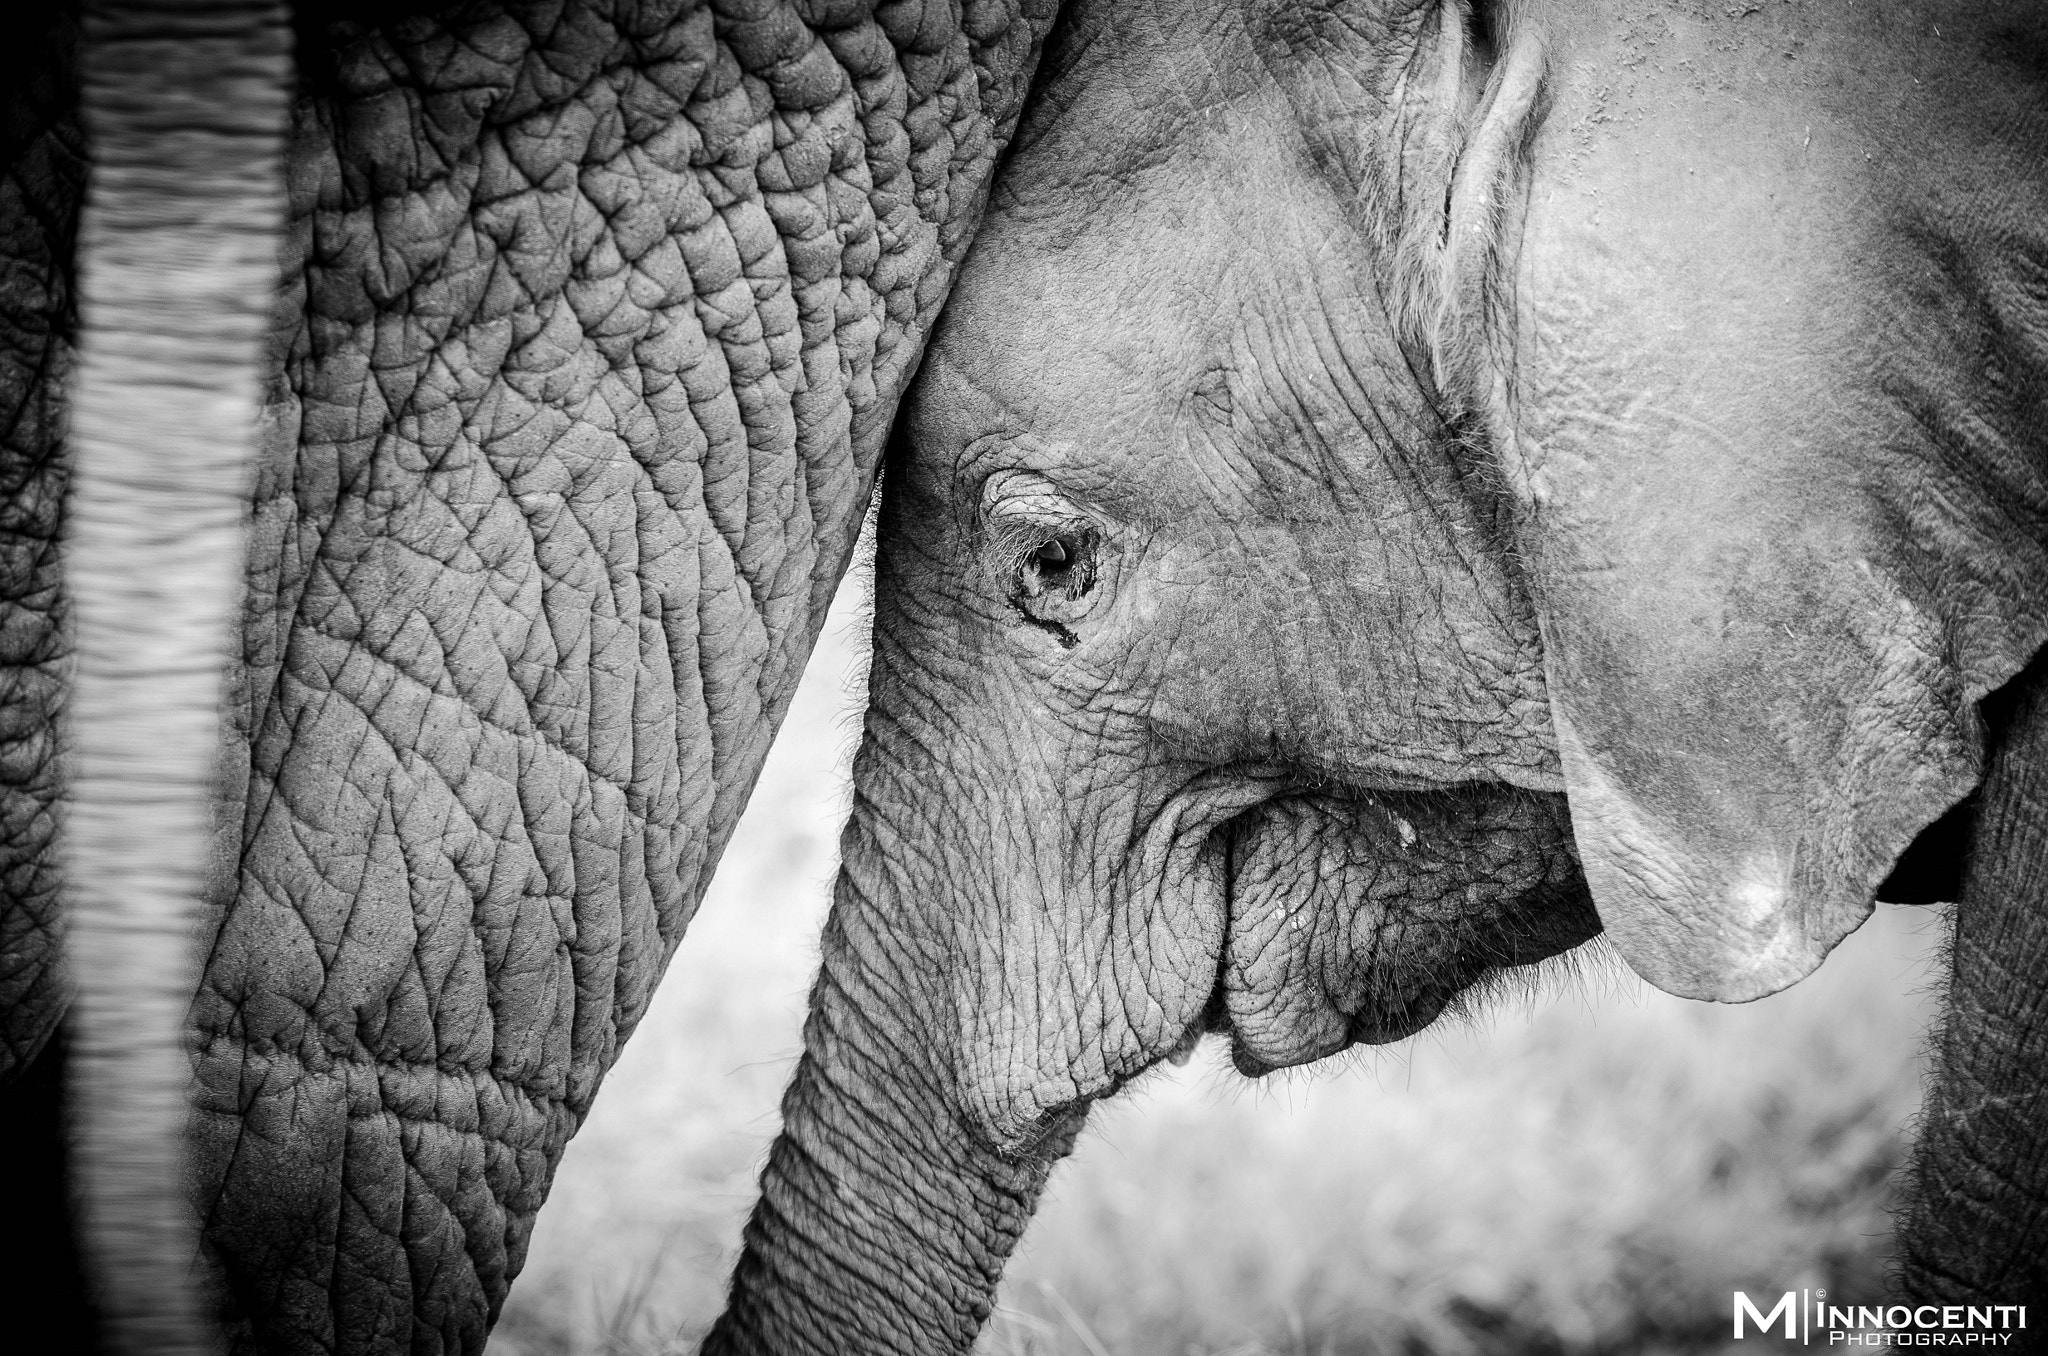 Photograph Elephant cub by Matteo Innocenti on 500px